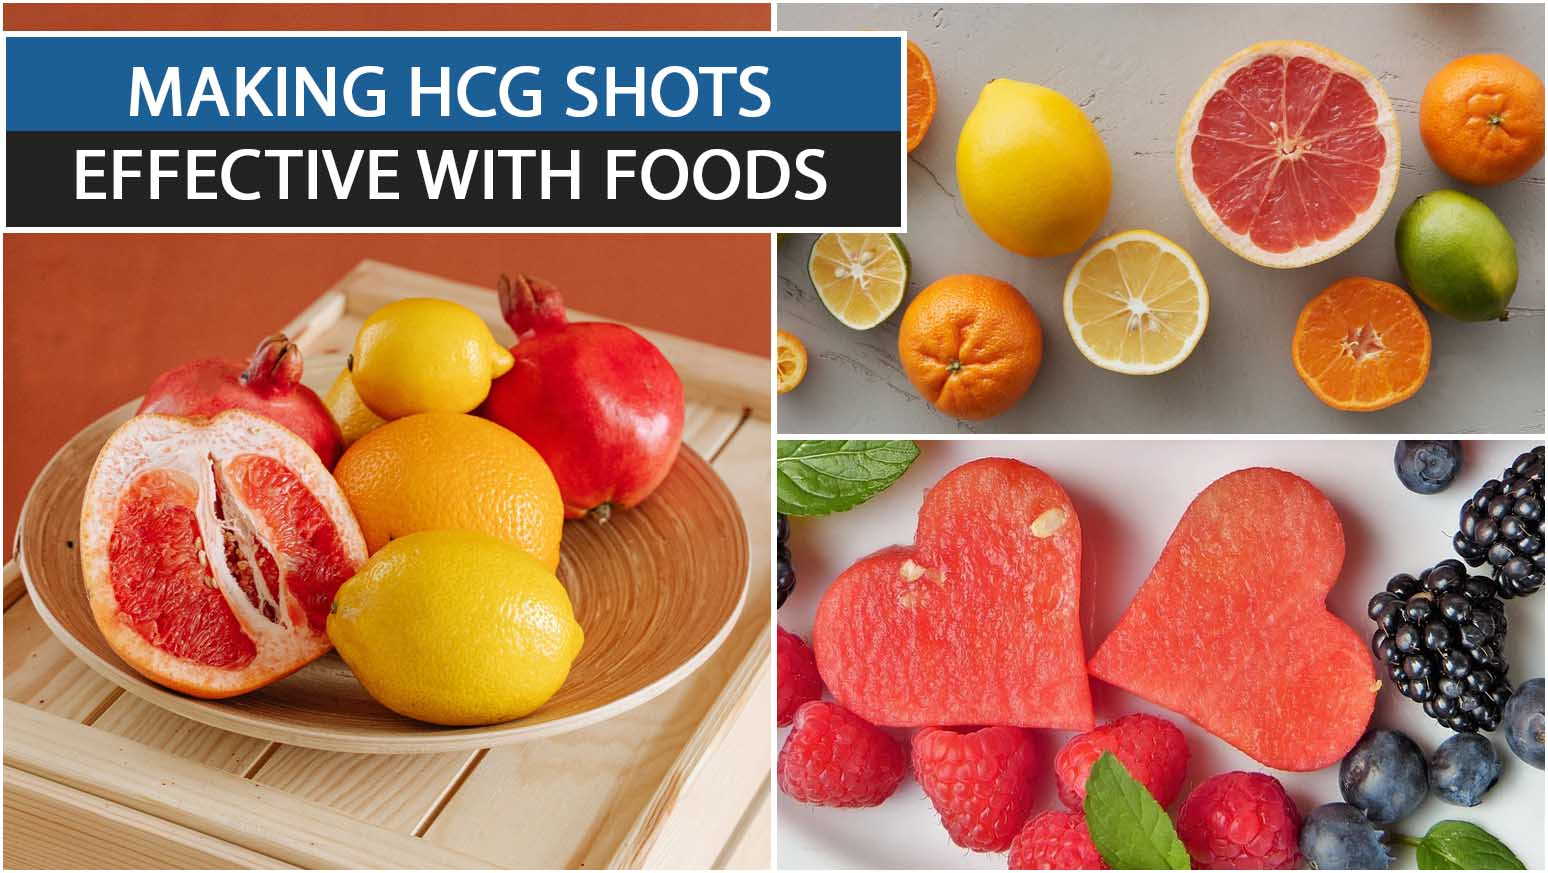 MAKING HCG SHOTS EFFECTIVE WITH FOODS